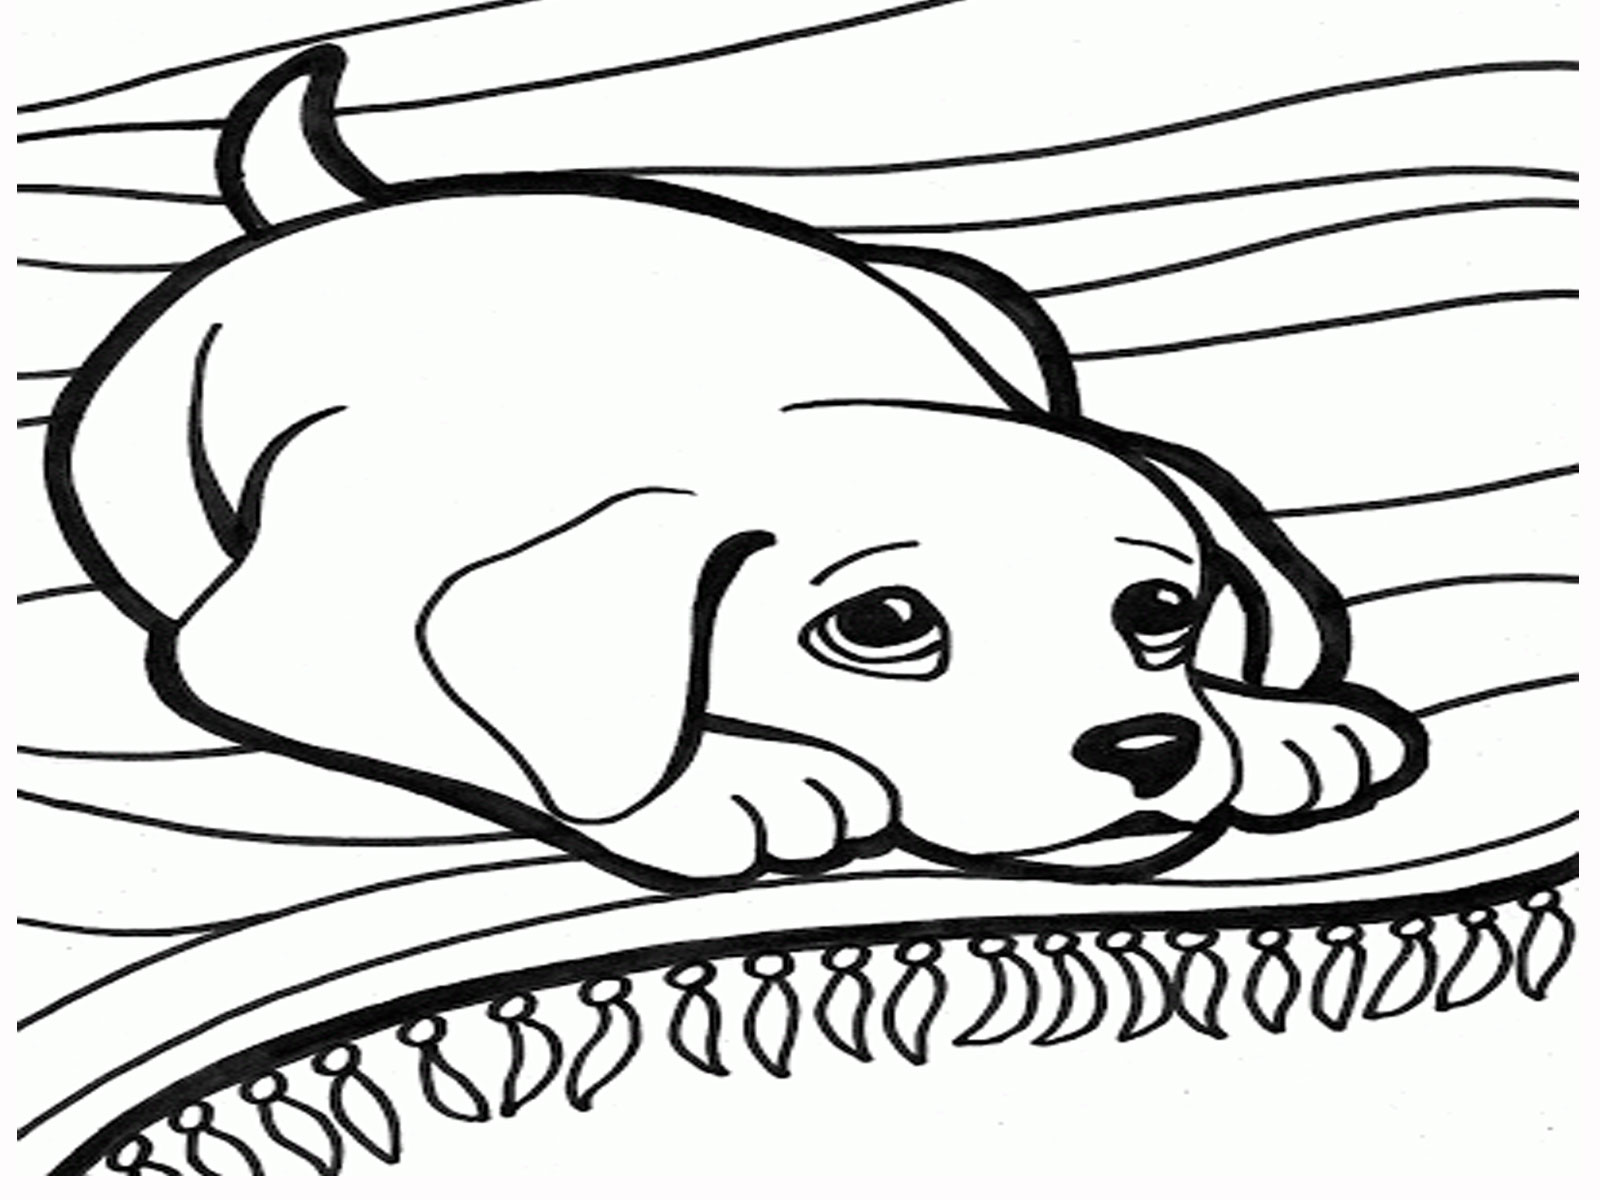 Coloring Book Pages Of Dogs : Cat and dog coloring pages to download and print for free